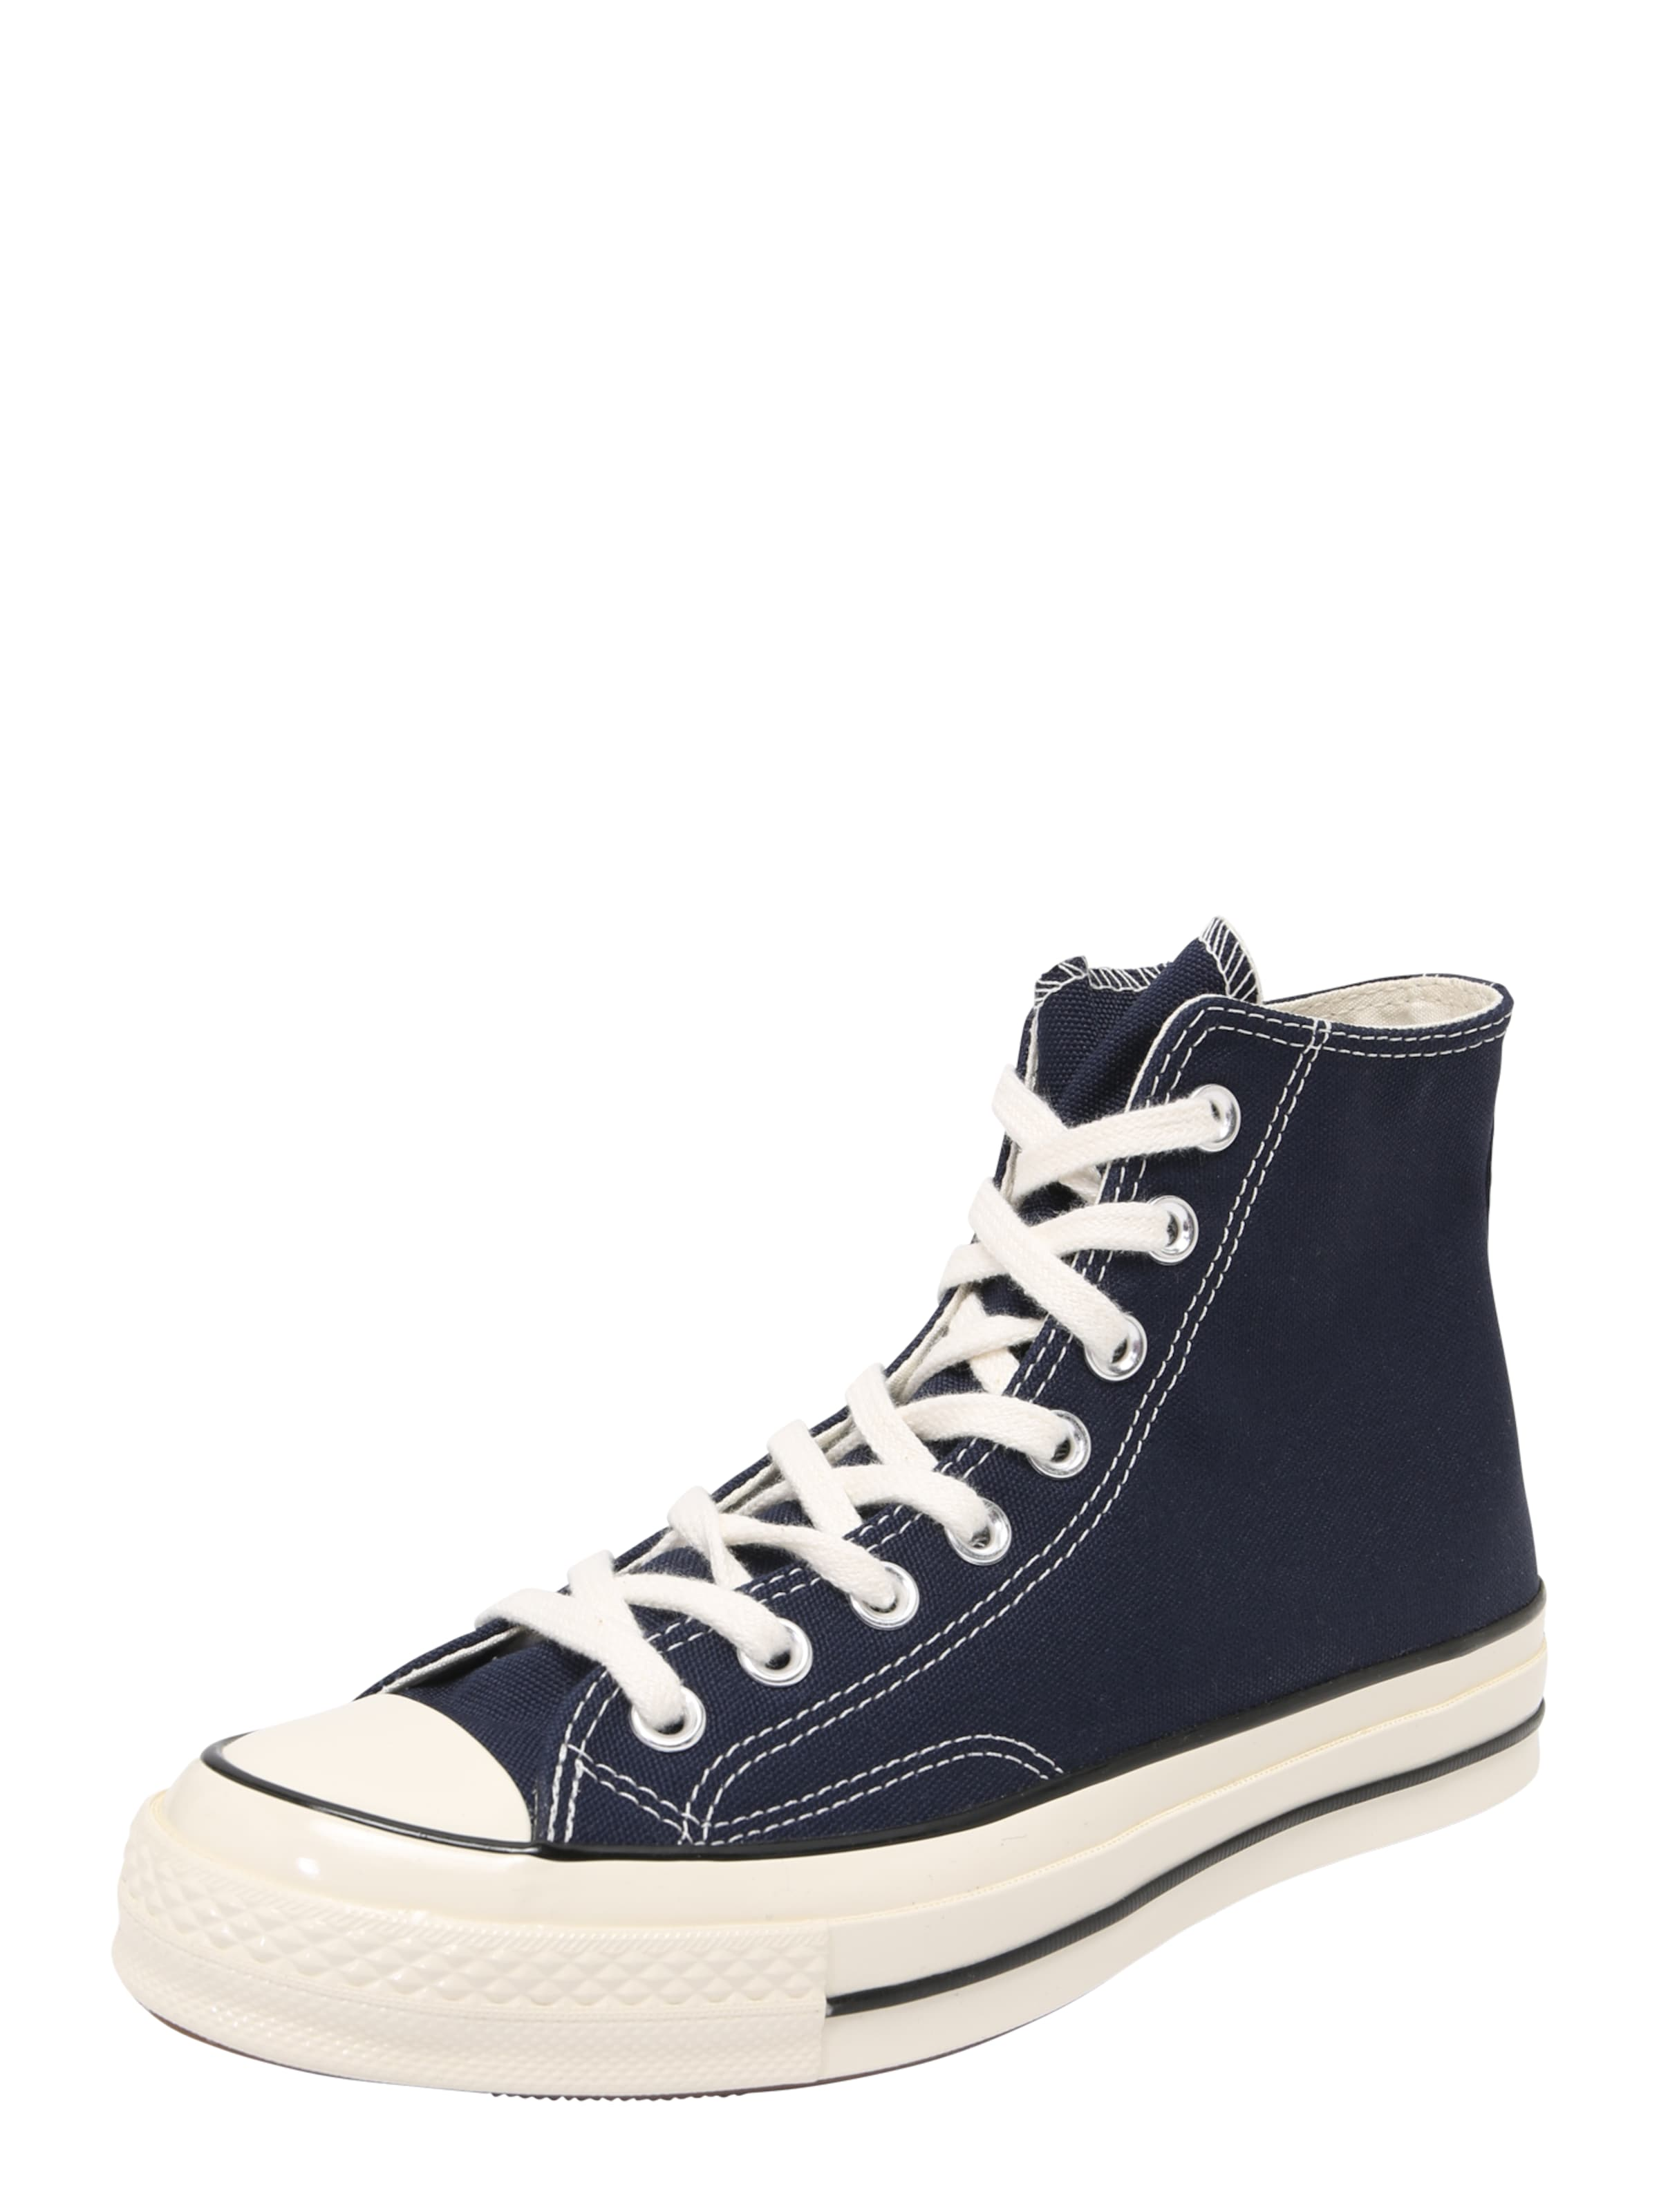 Sneaker In Always Converse 'chuck 70 On' Dunkelblau BCdoex